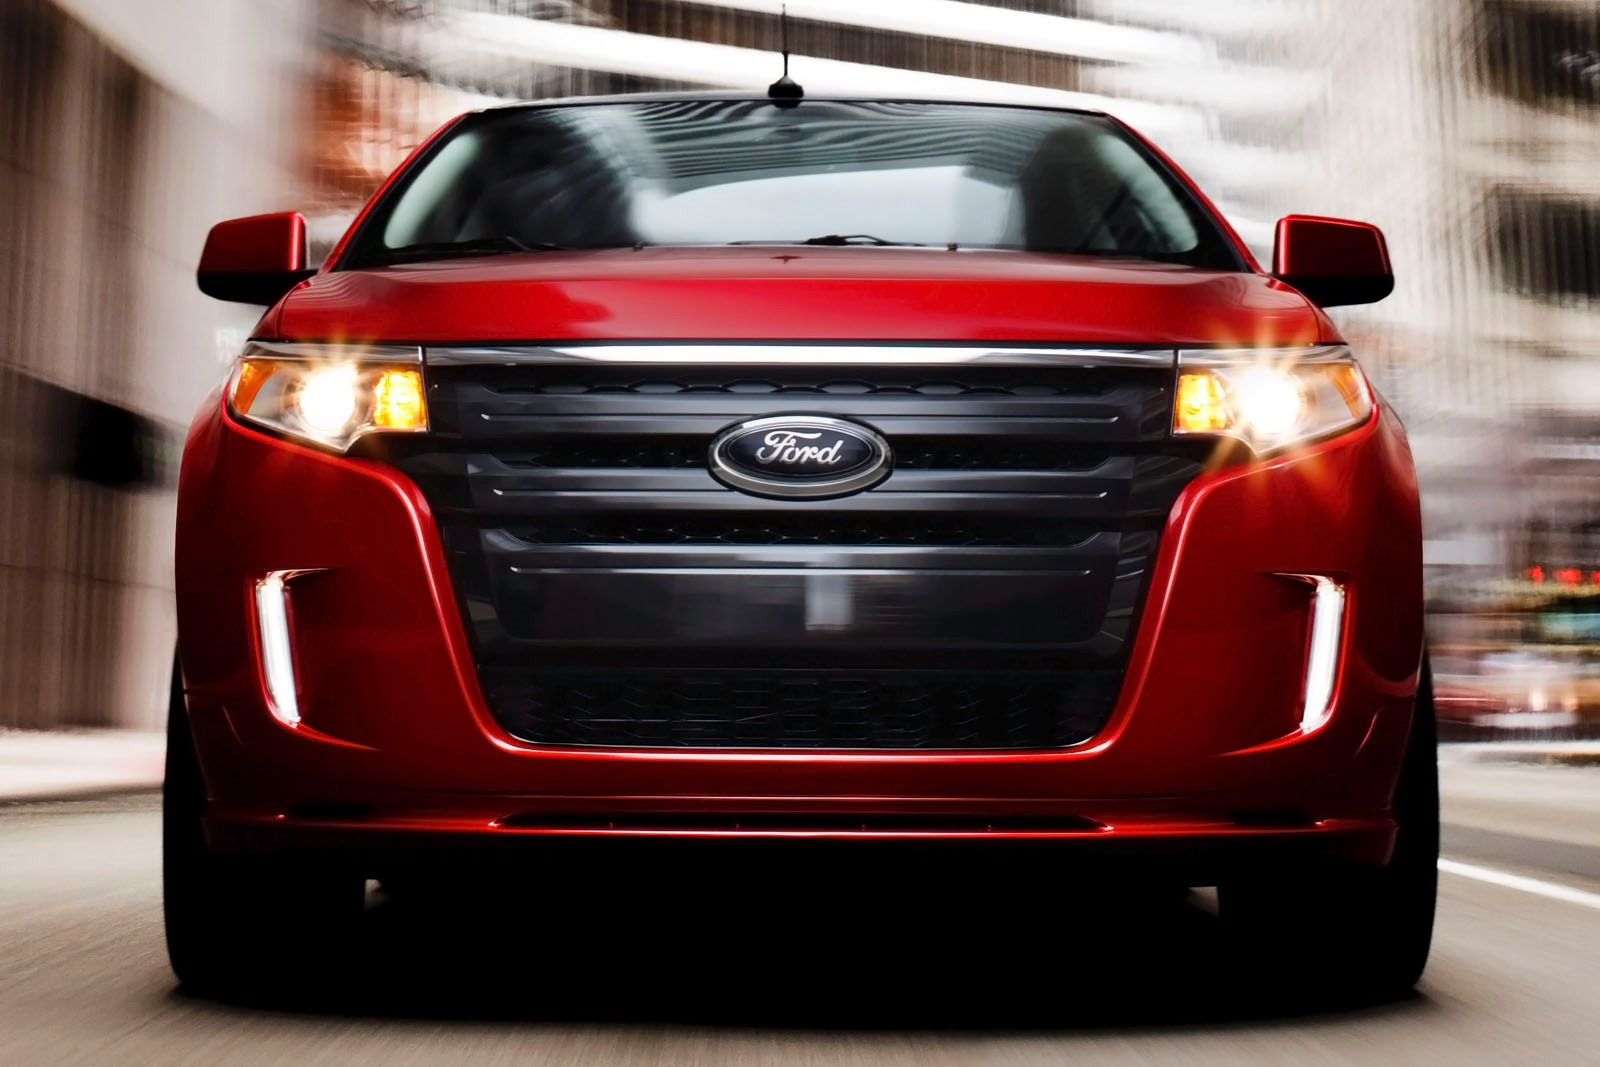 2013 ford edge 7 2013 ford edge 4dr suv re exterior 7